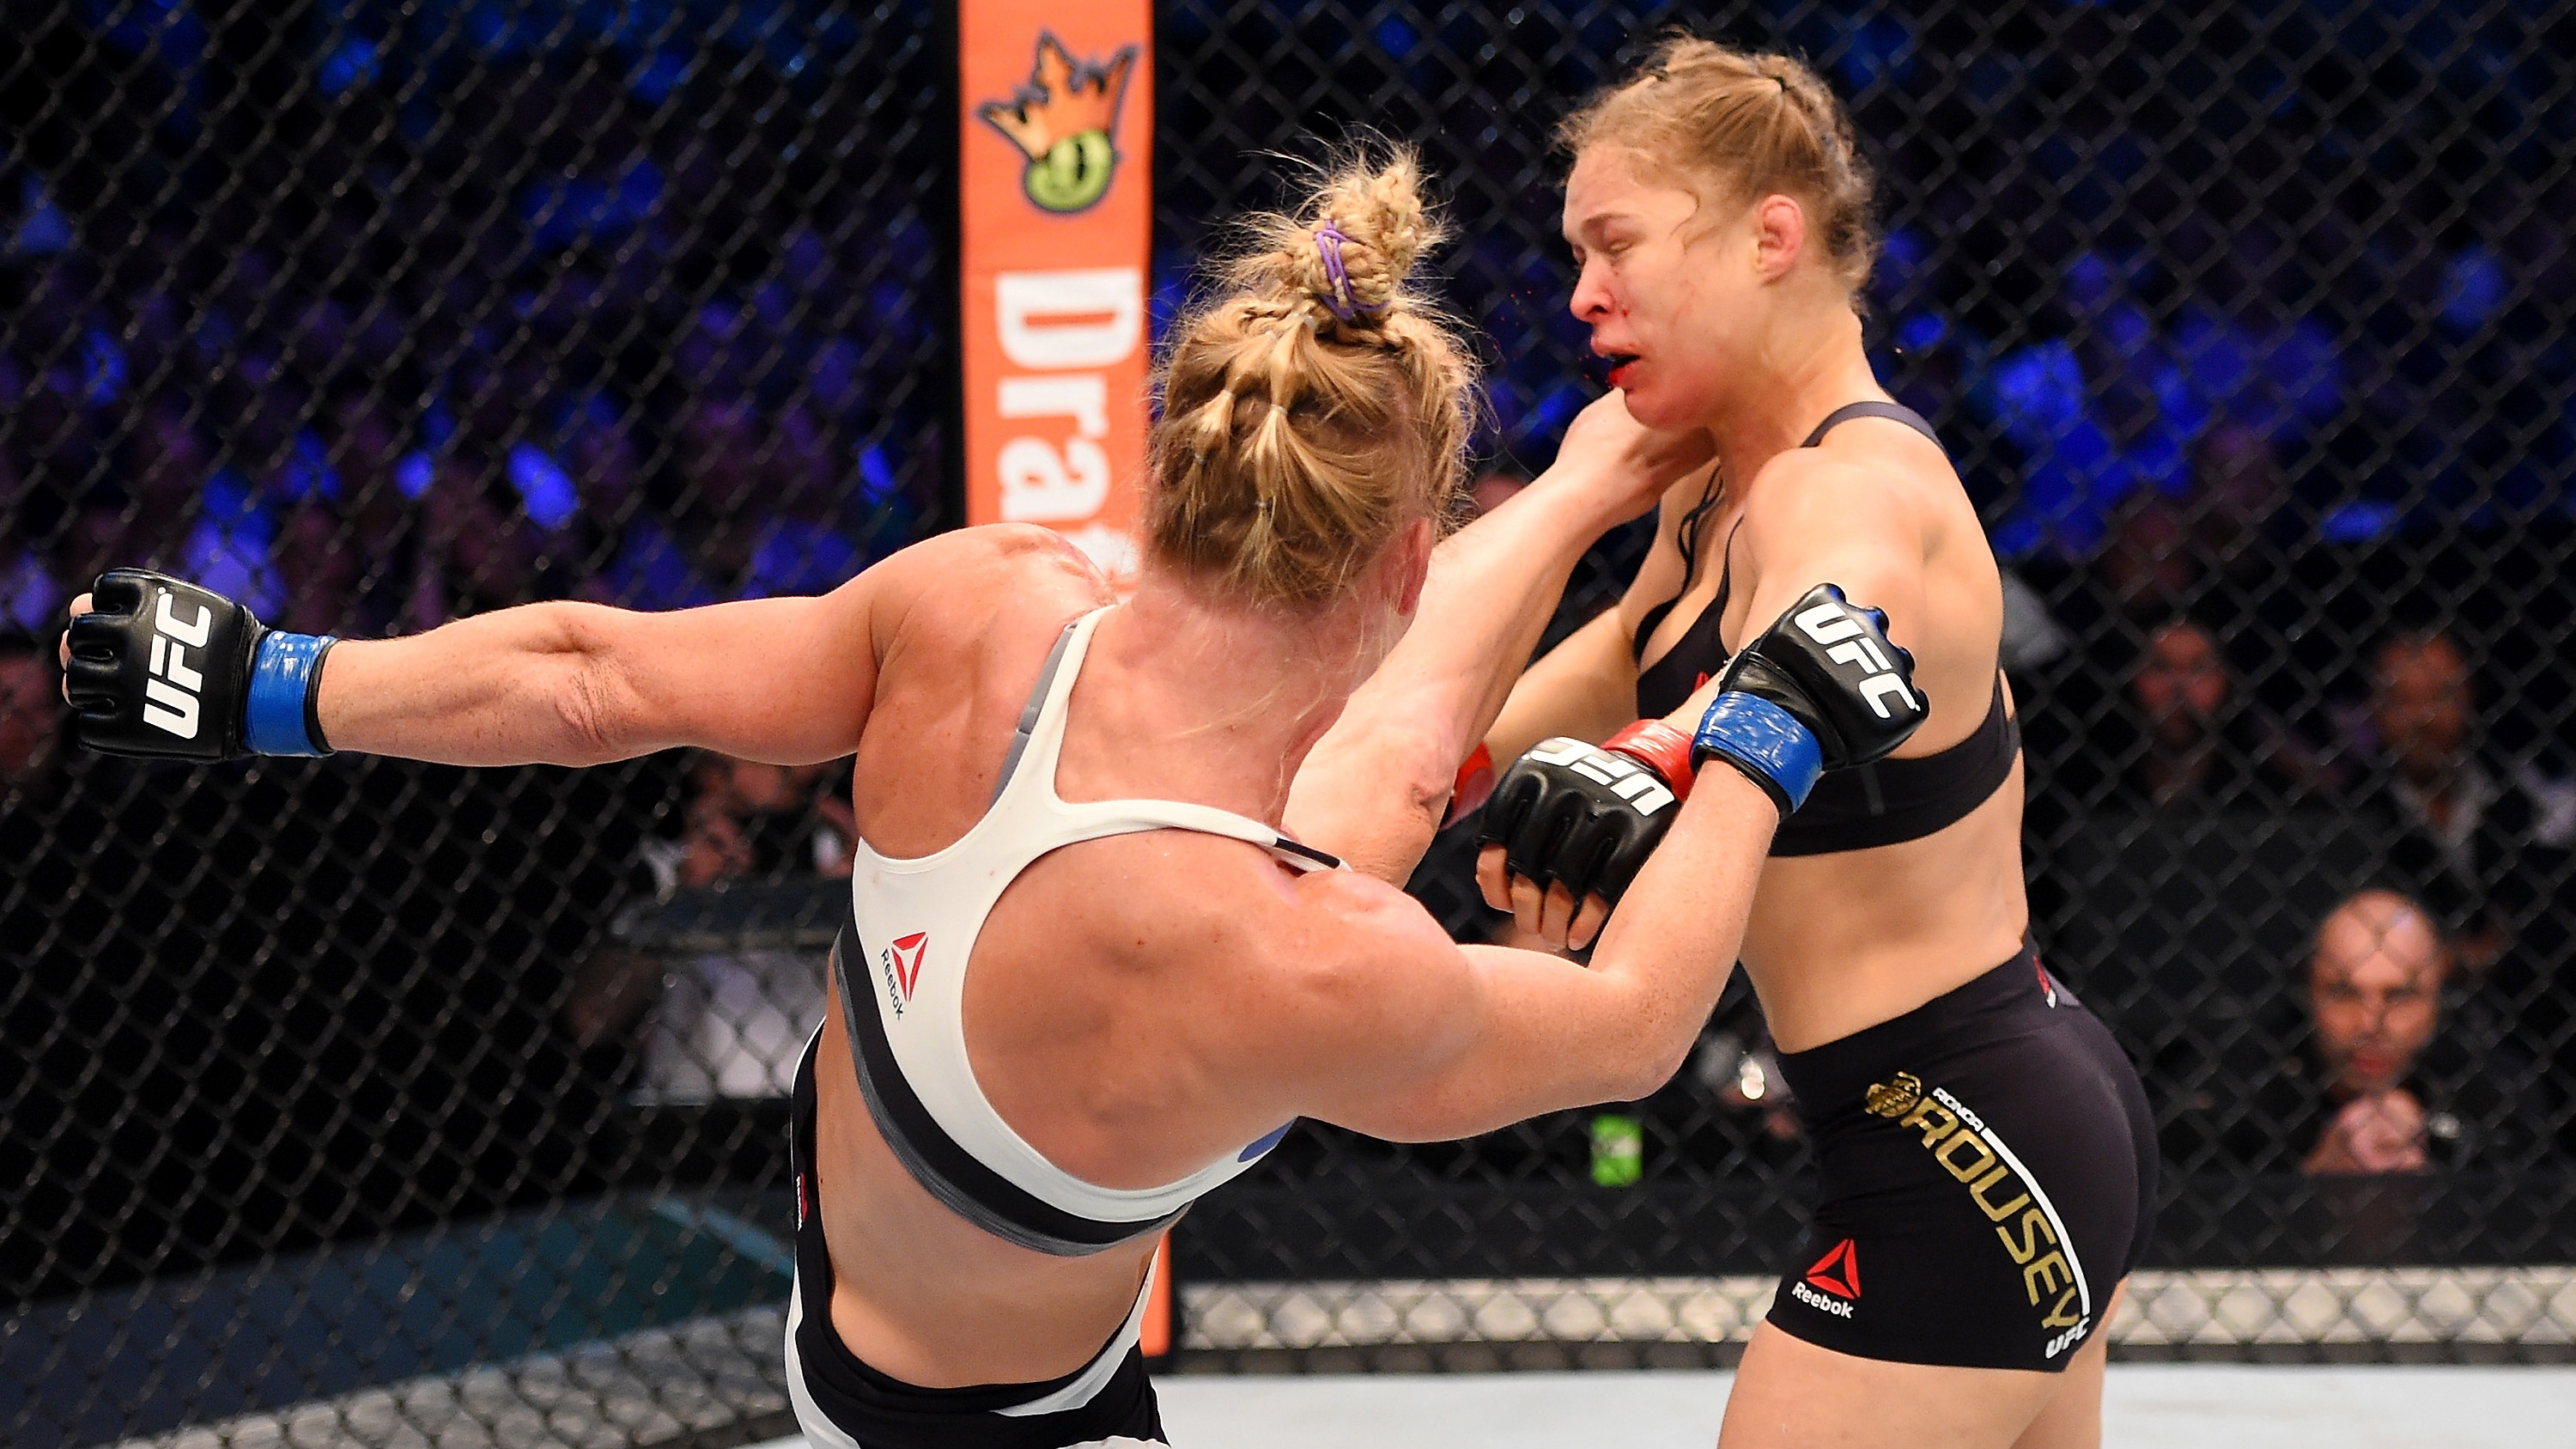 This kick sent shockwaves throughout the world as Holm beat Rousey (Photo by Josh Hedges/Zuffa LLC/Zuffa LLC via Getty Images)